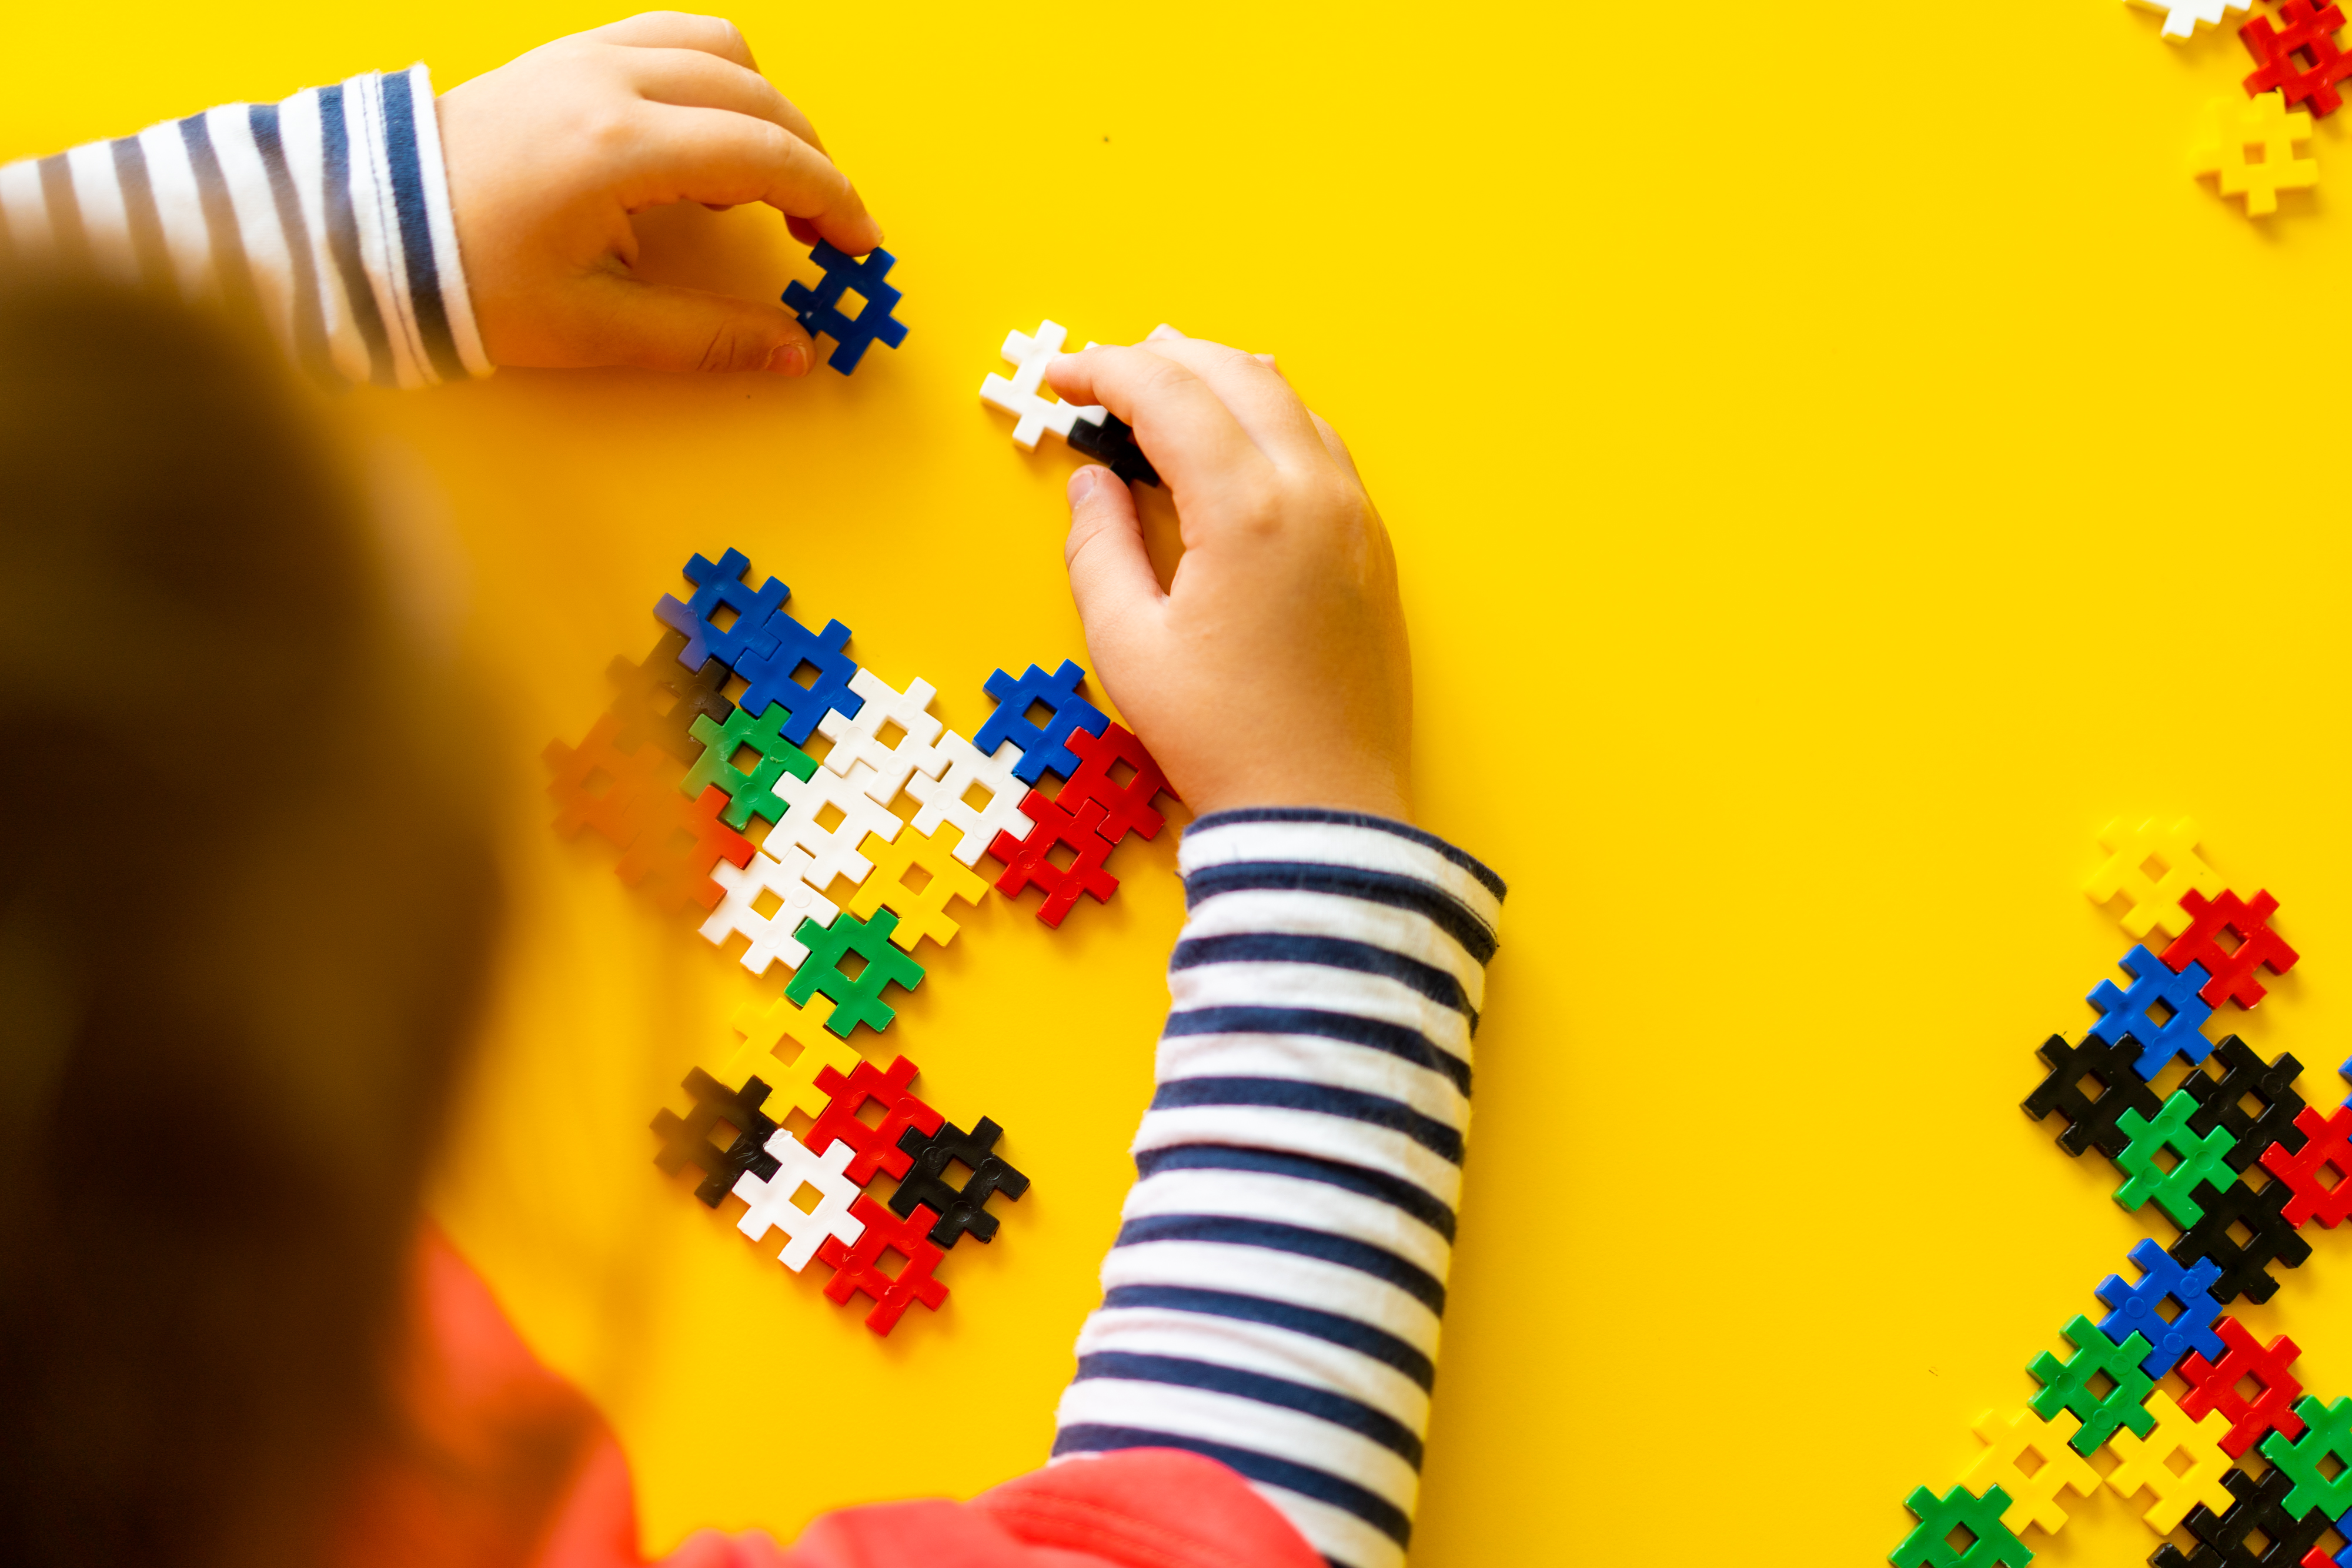 Montessori pedagogy is unique for recognizing stages of development.